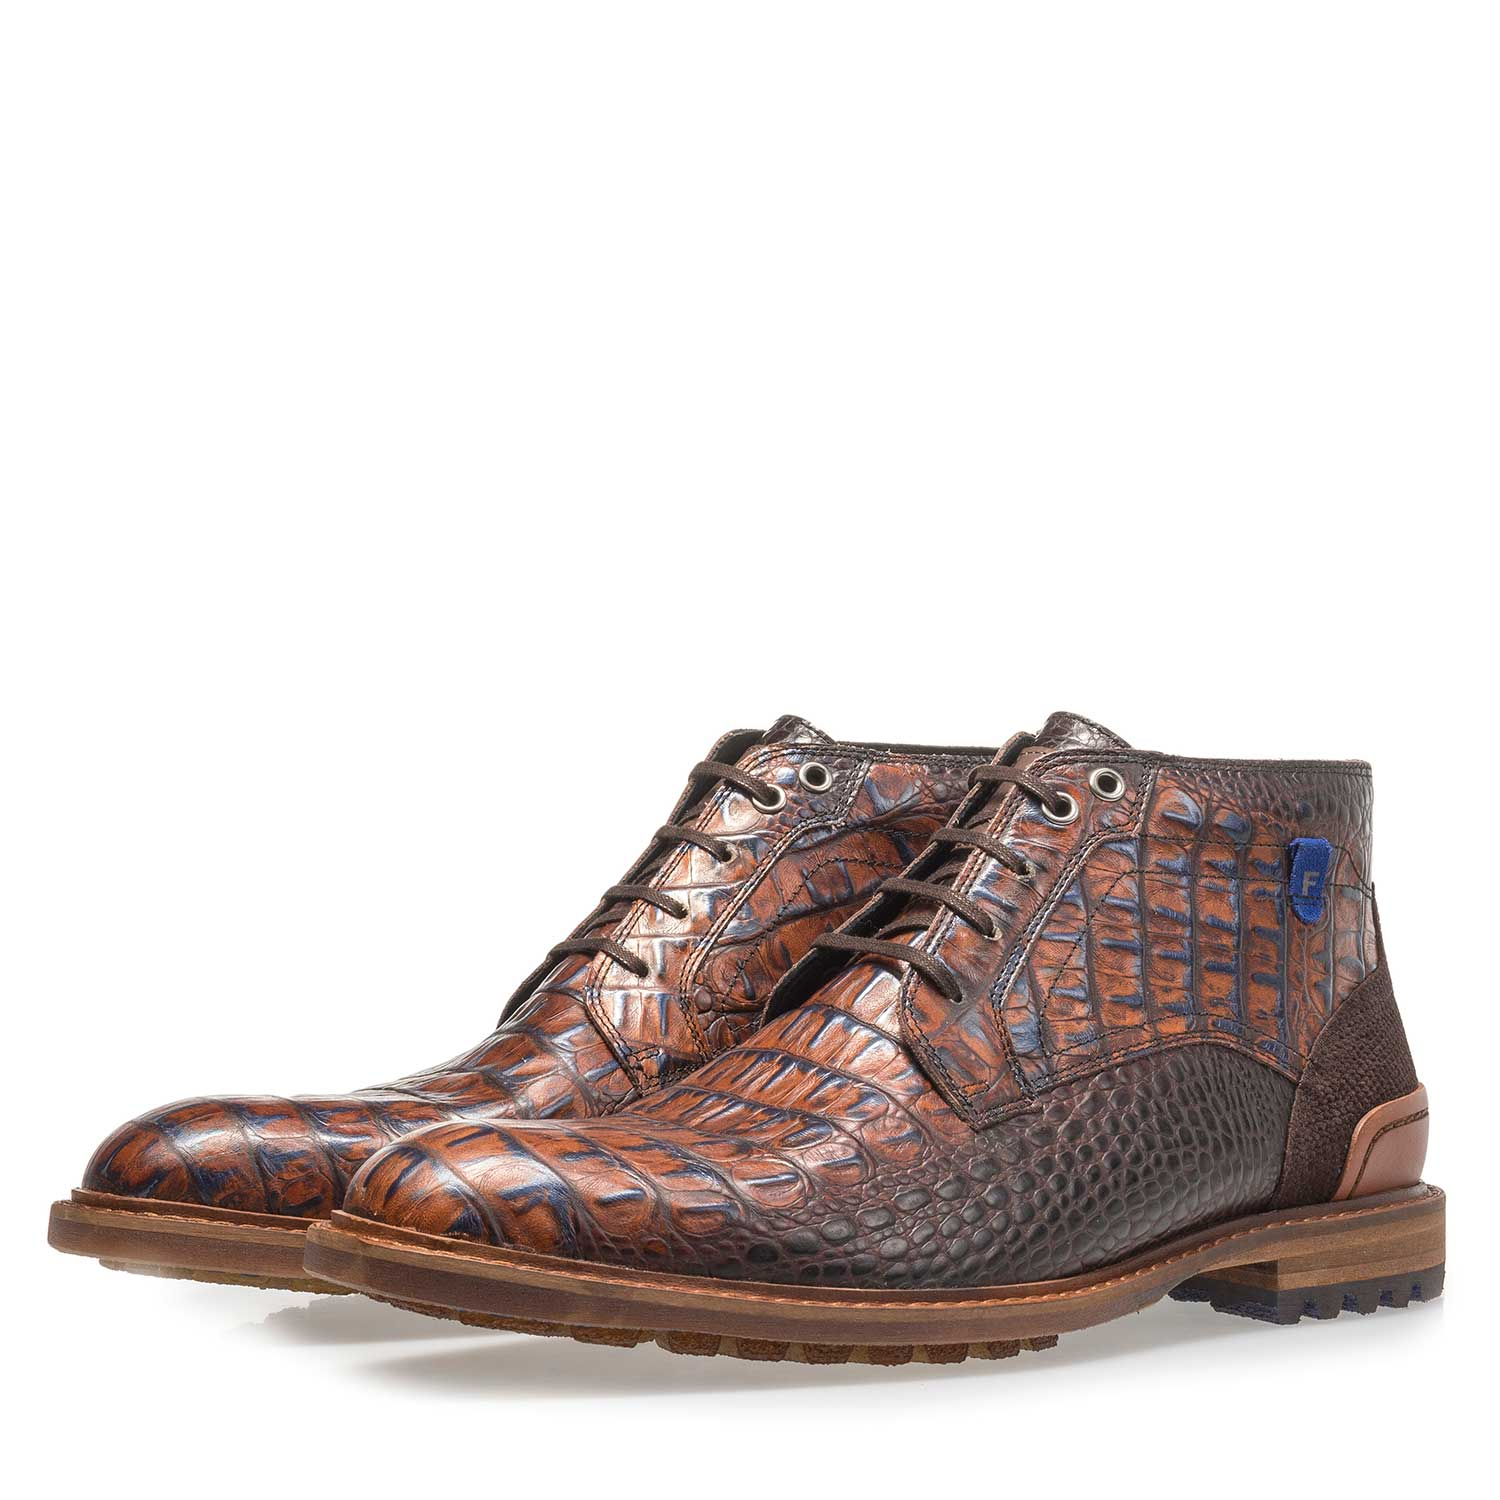 20228/24 - Cognac-coloured leather lace boot with croco print